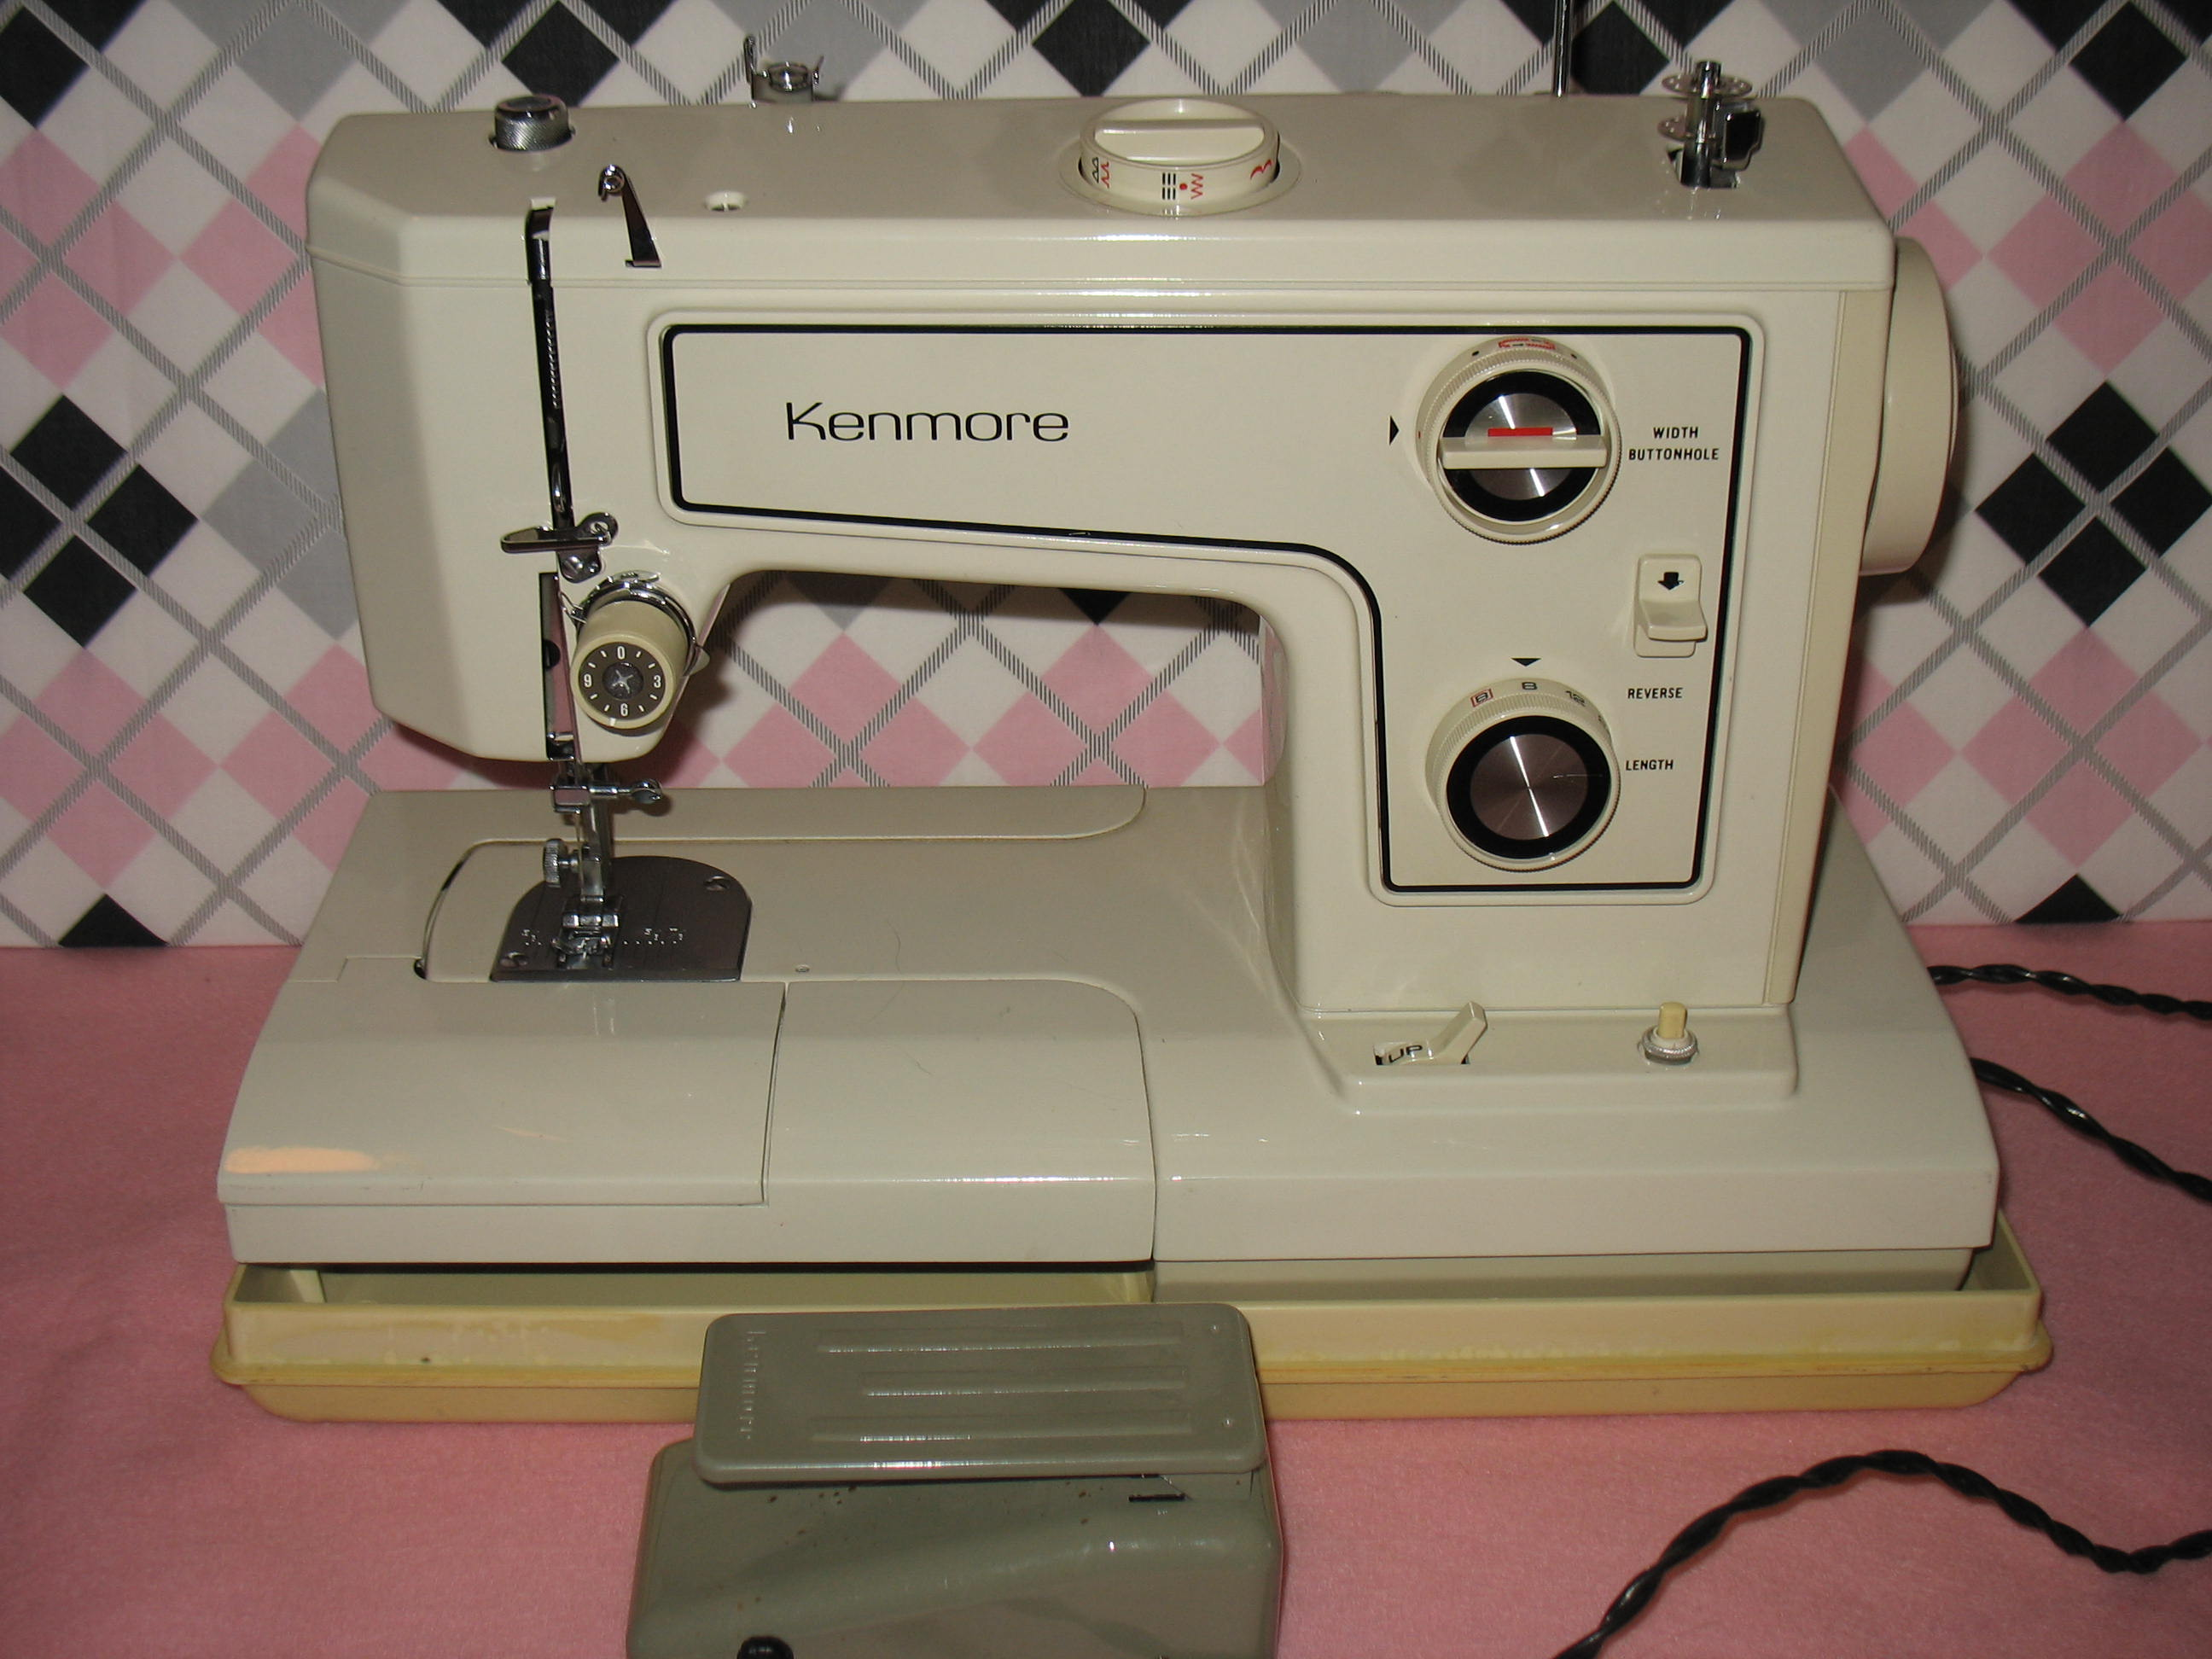 If you had purchased this sewing ...